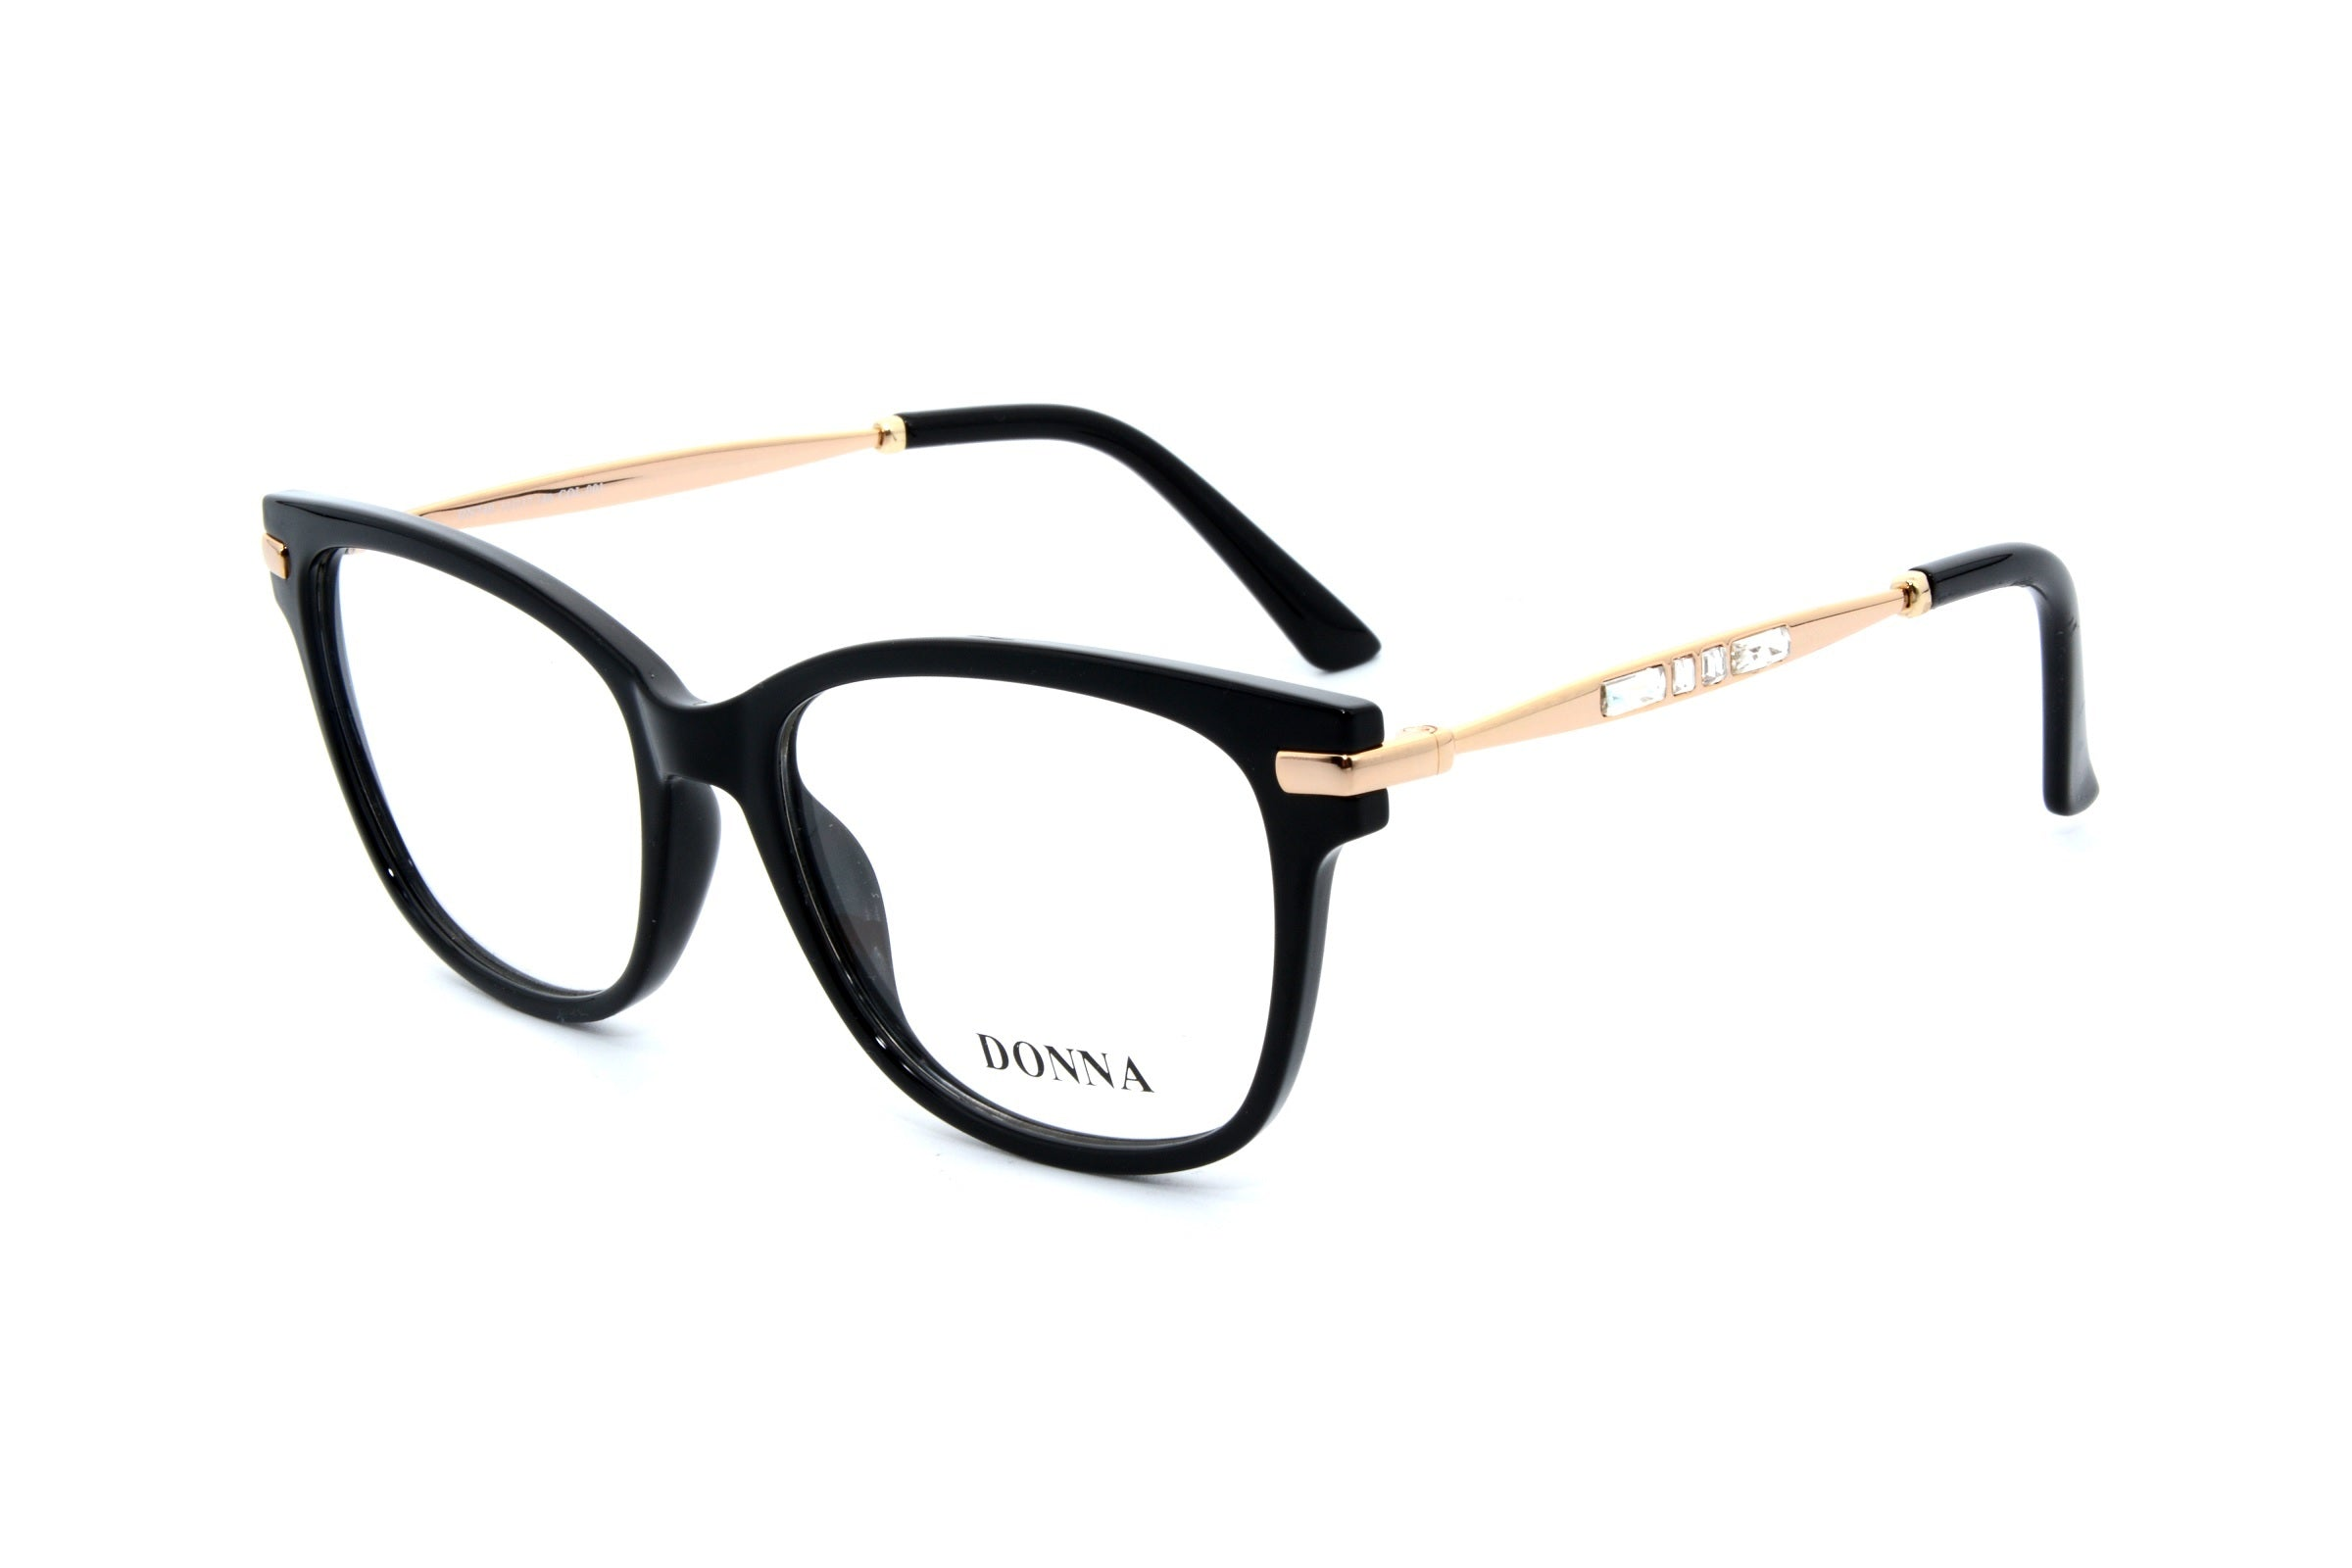 Donna eyewear 740, C001 - Optics Trading